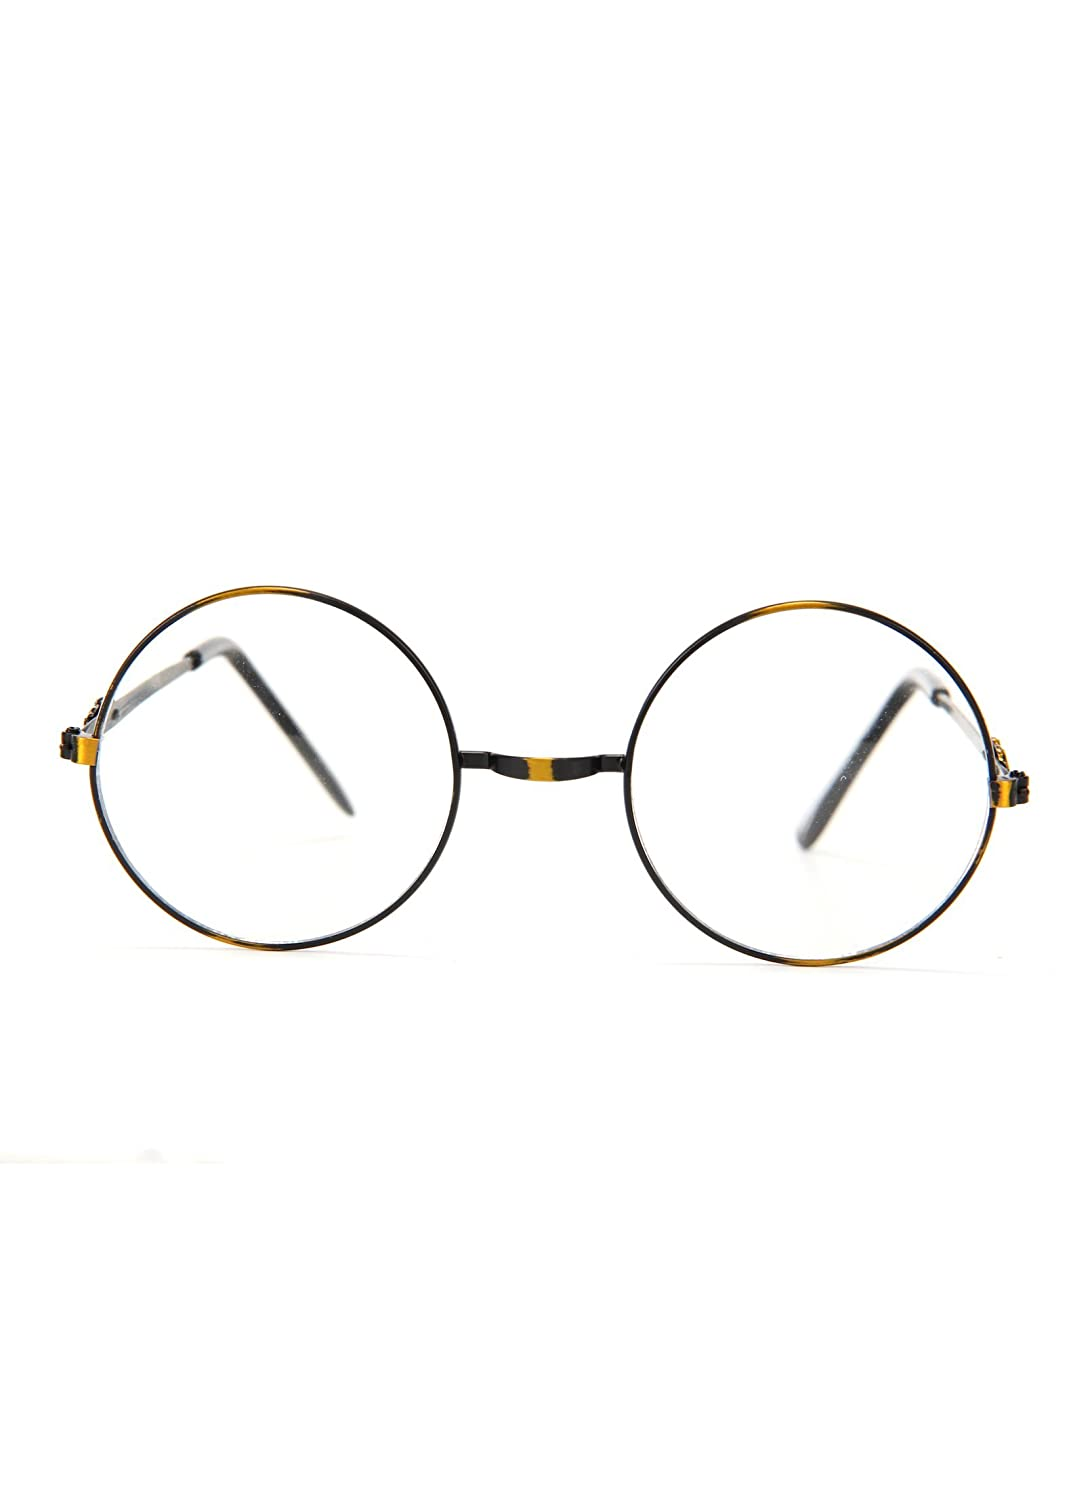 Harry's Glasses Wire Elope LS7224 EO-LS7224